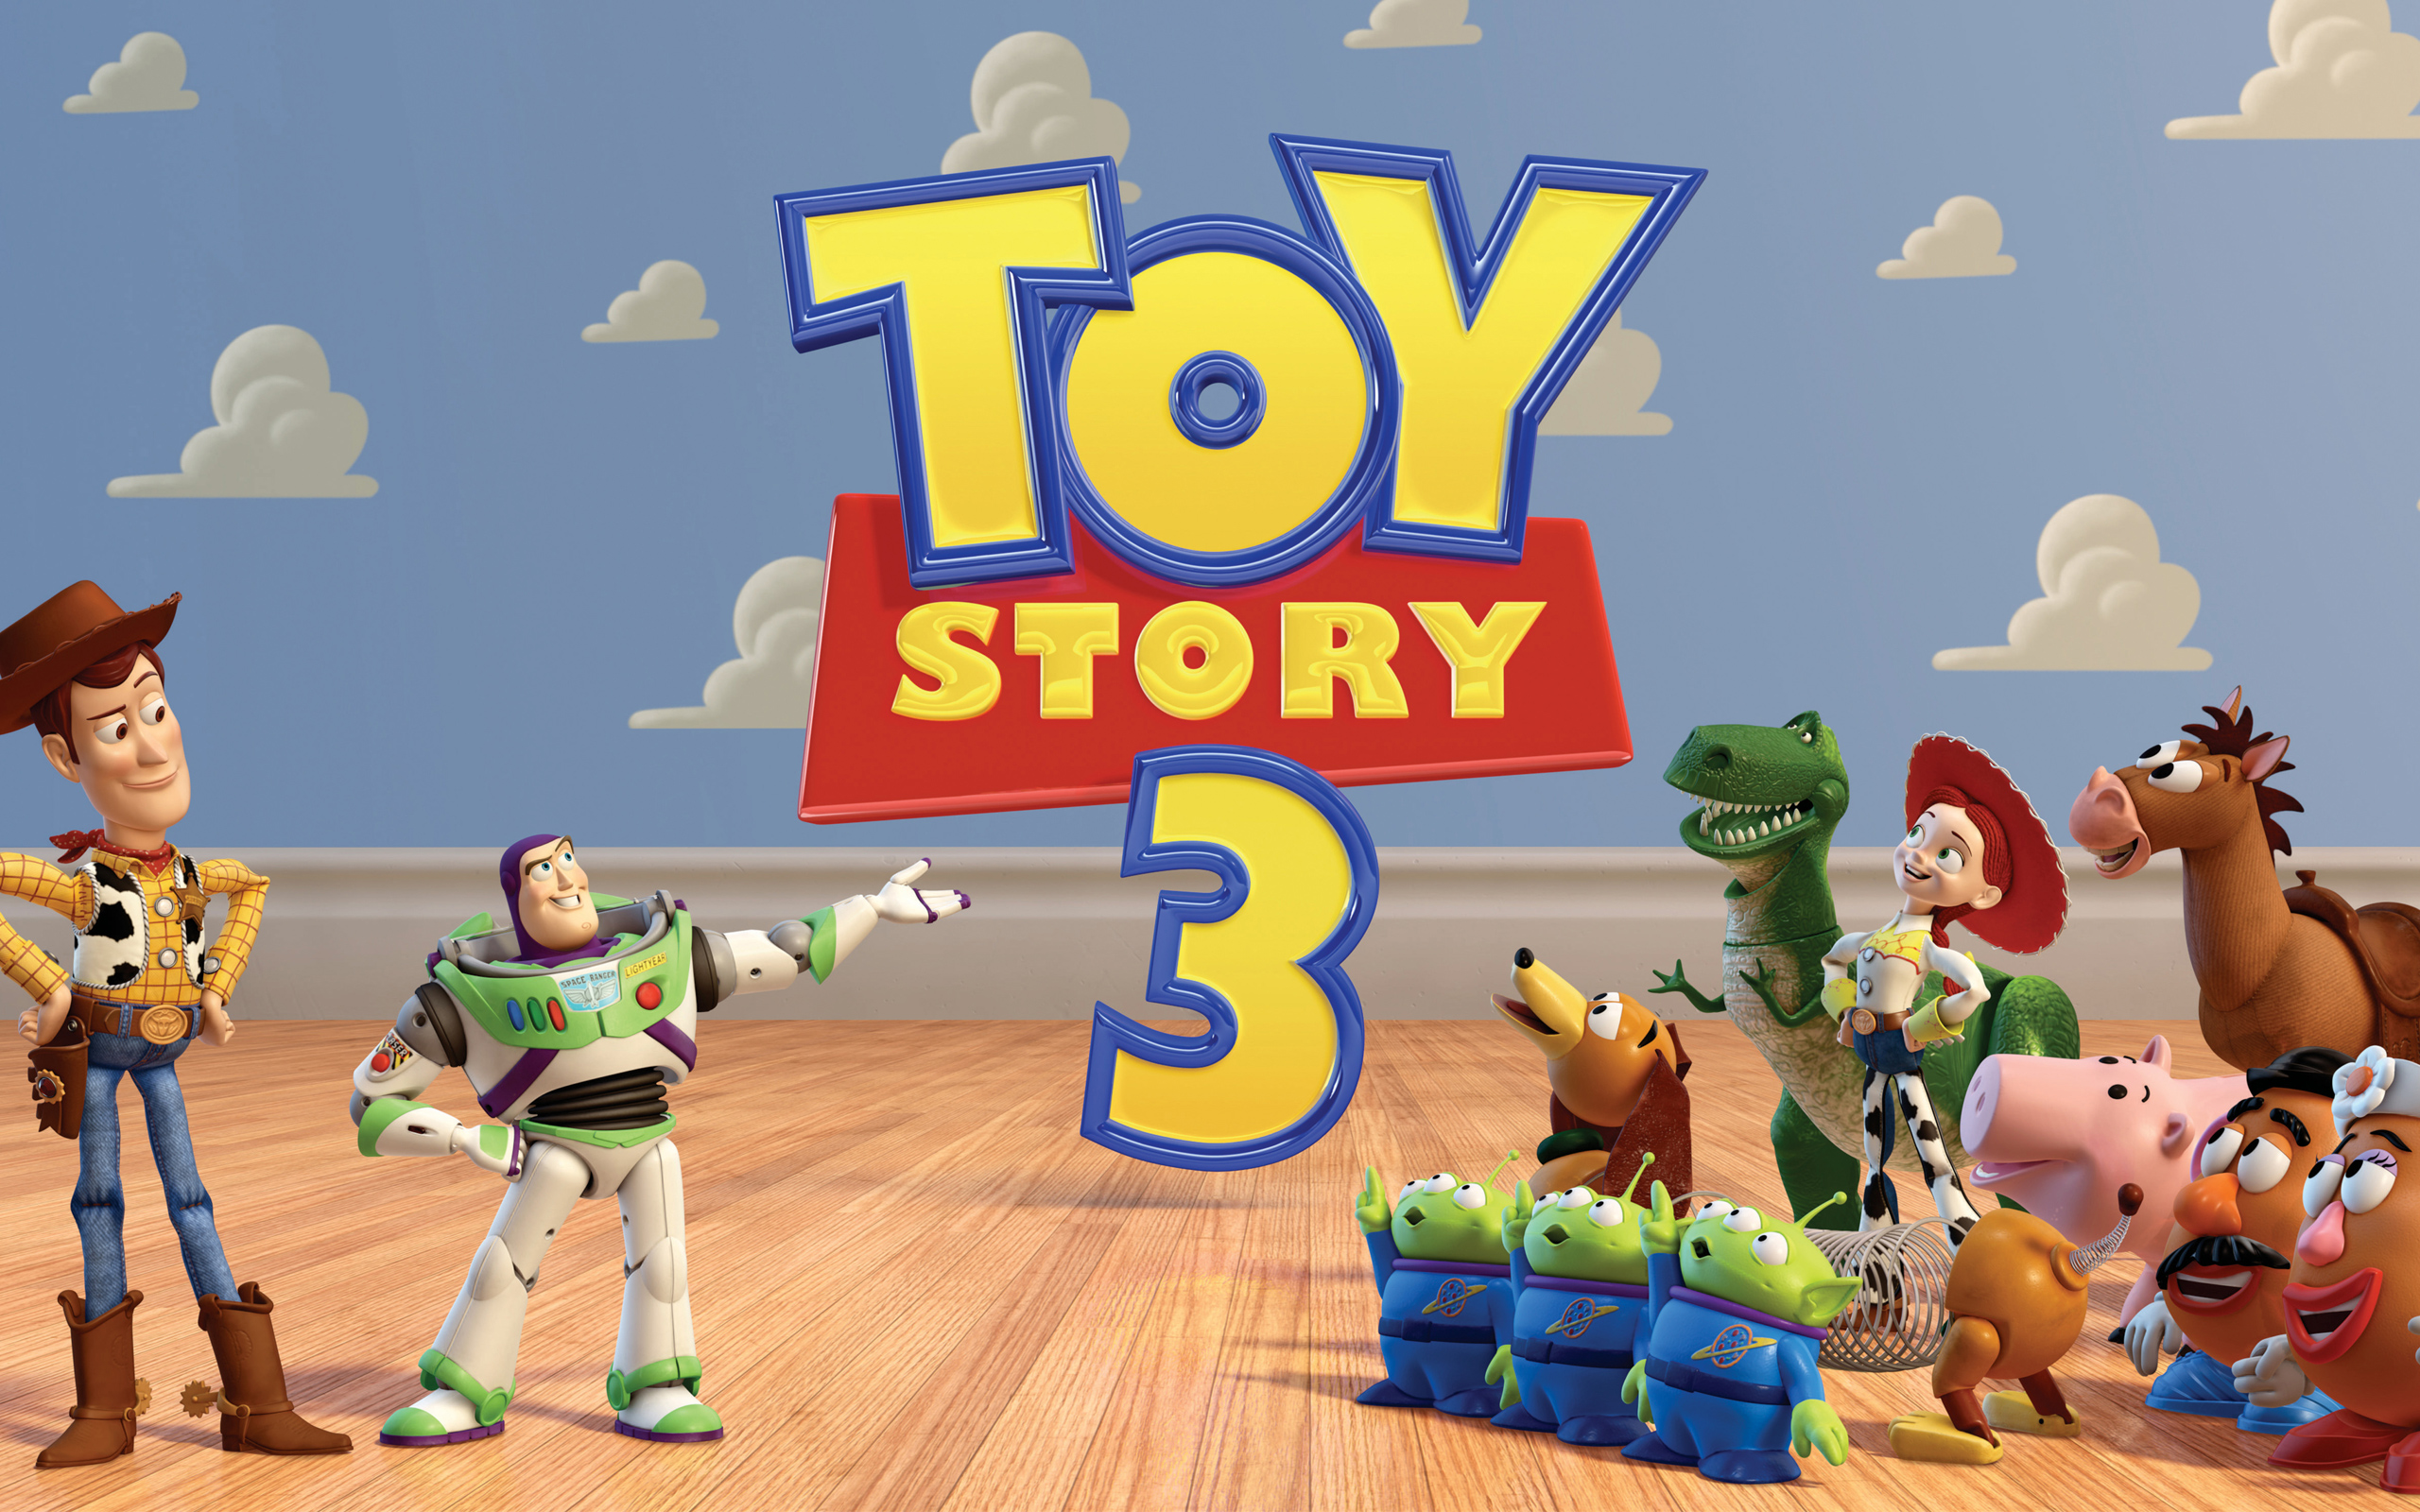 Toy Story 3 Post Comes In 2560x1600 Pixel All The Toys Are